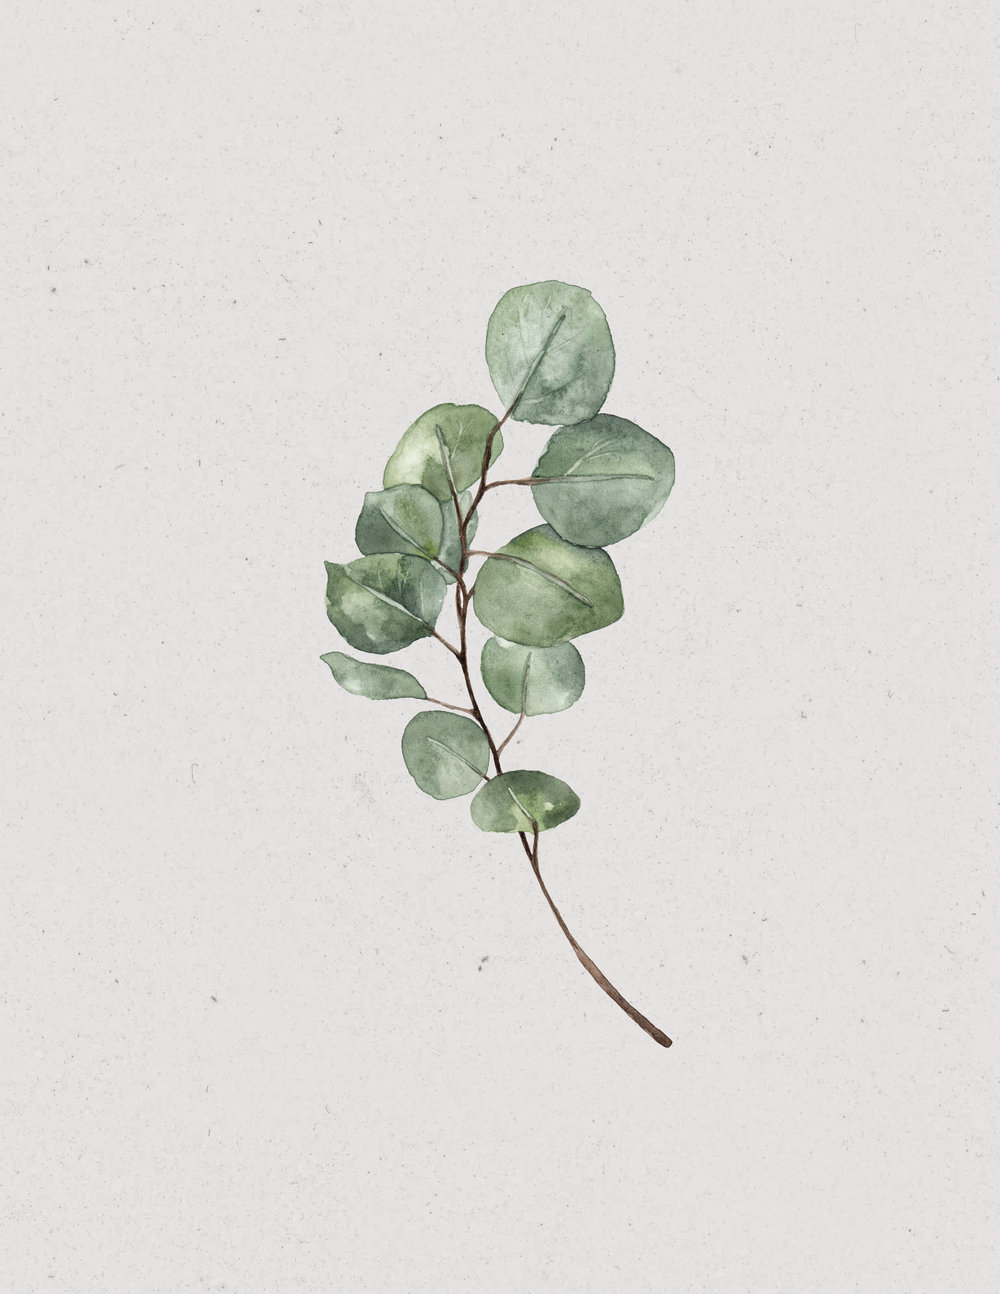 Leaves: Mary Clare Wilkie